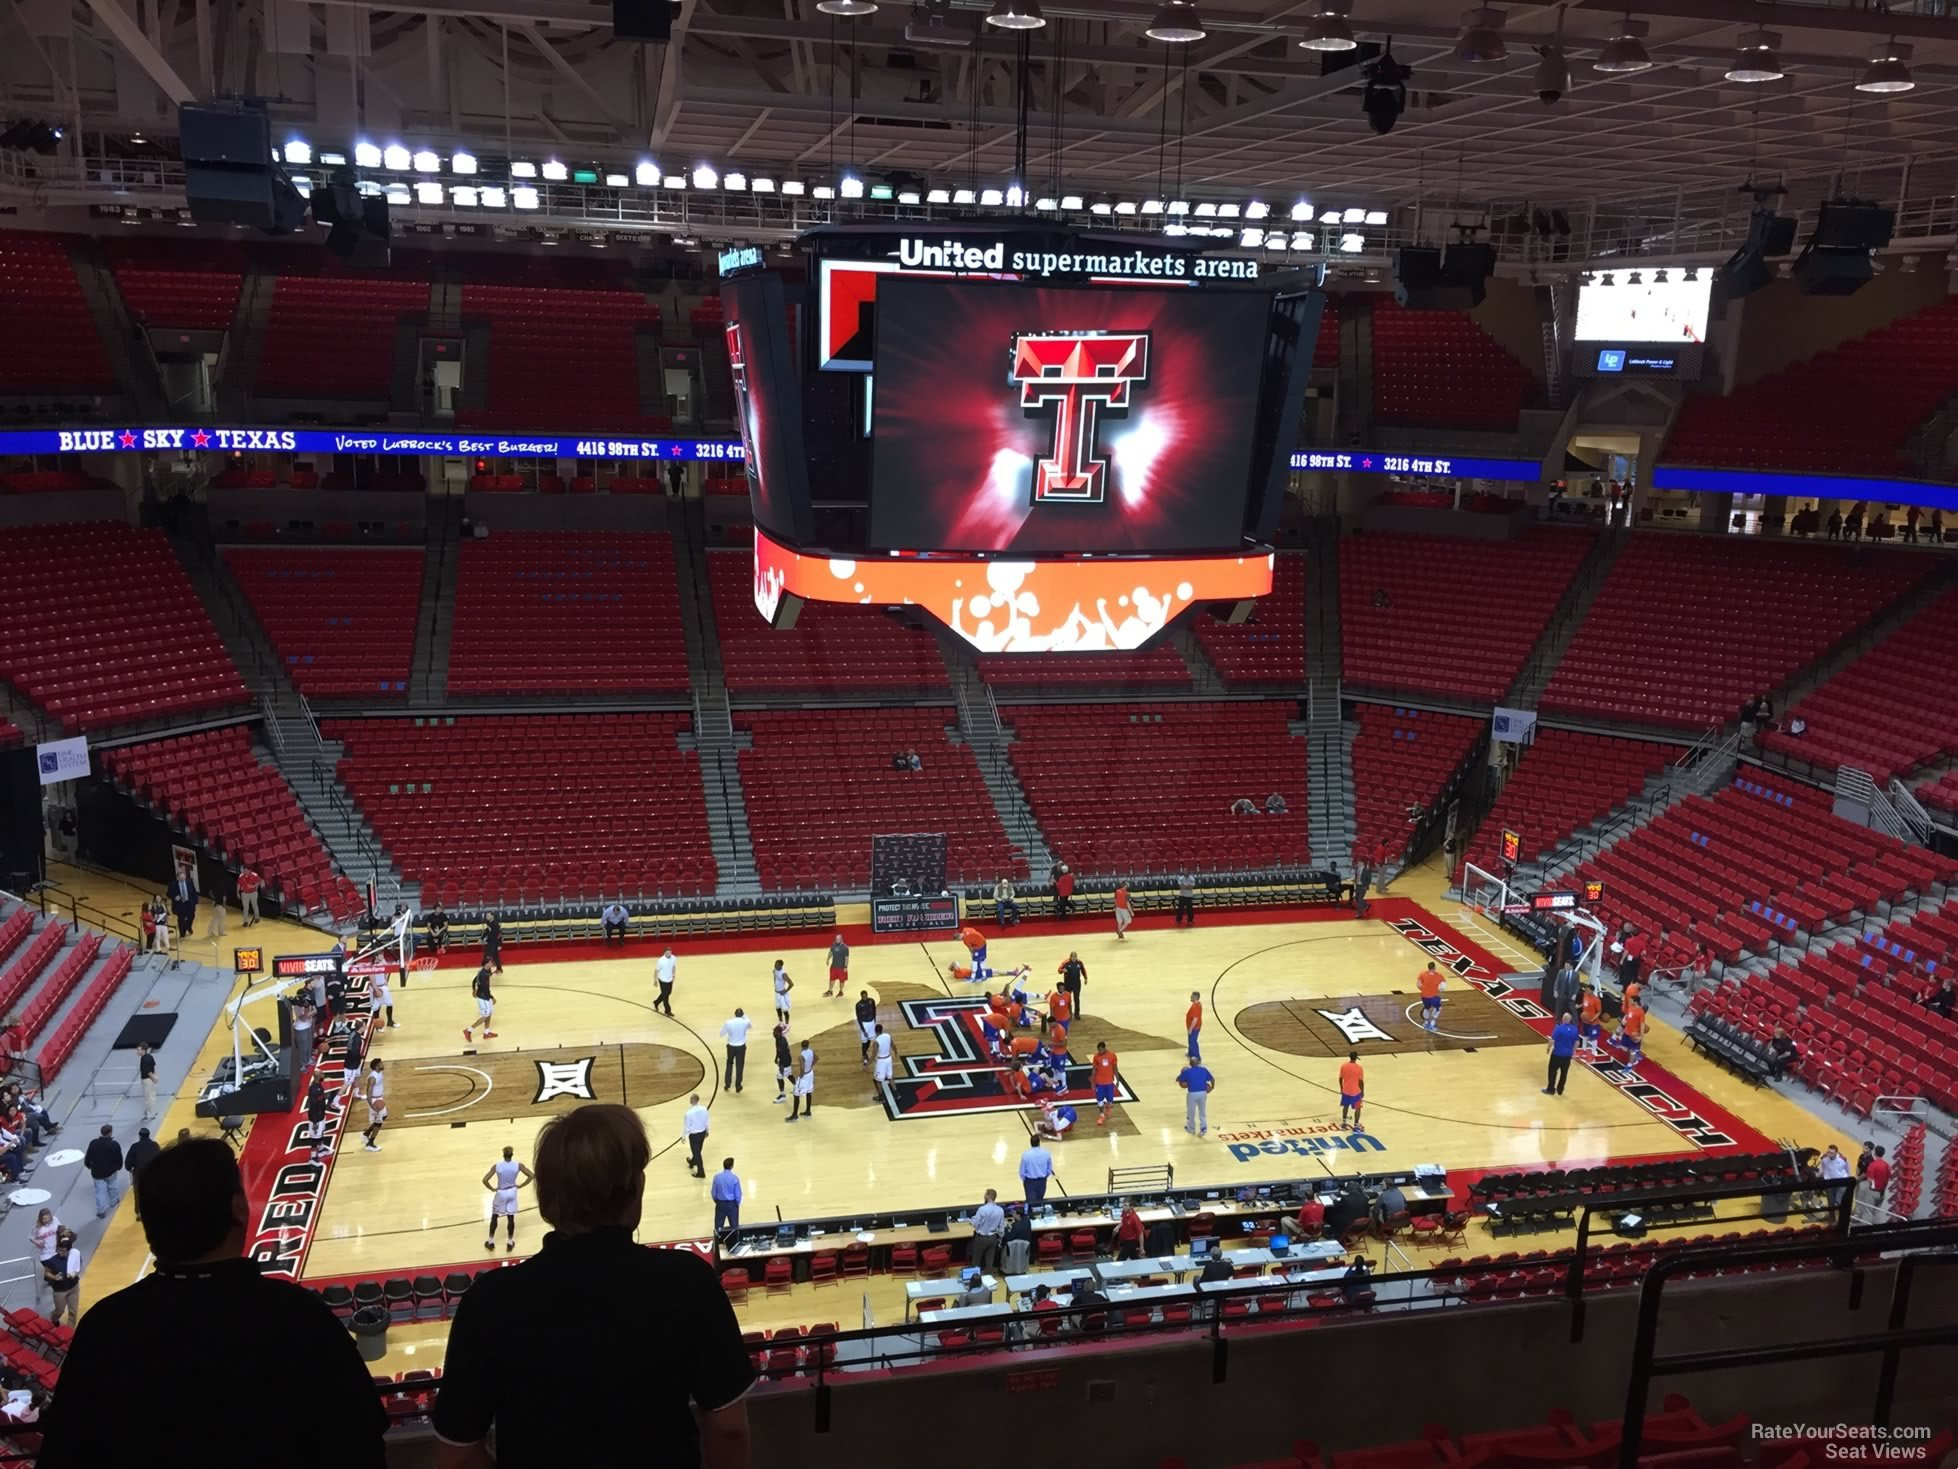 United Supermarkets Arena Section 218 - RateYourSeats.com